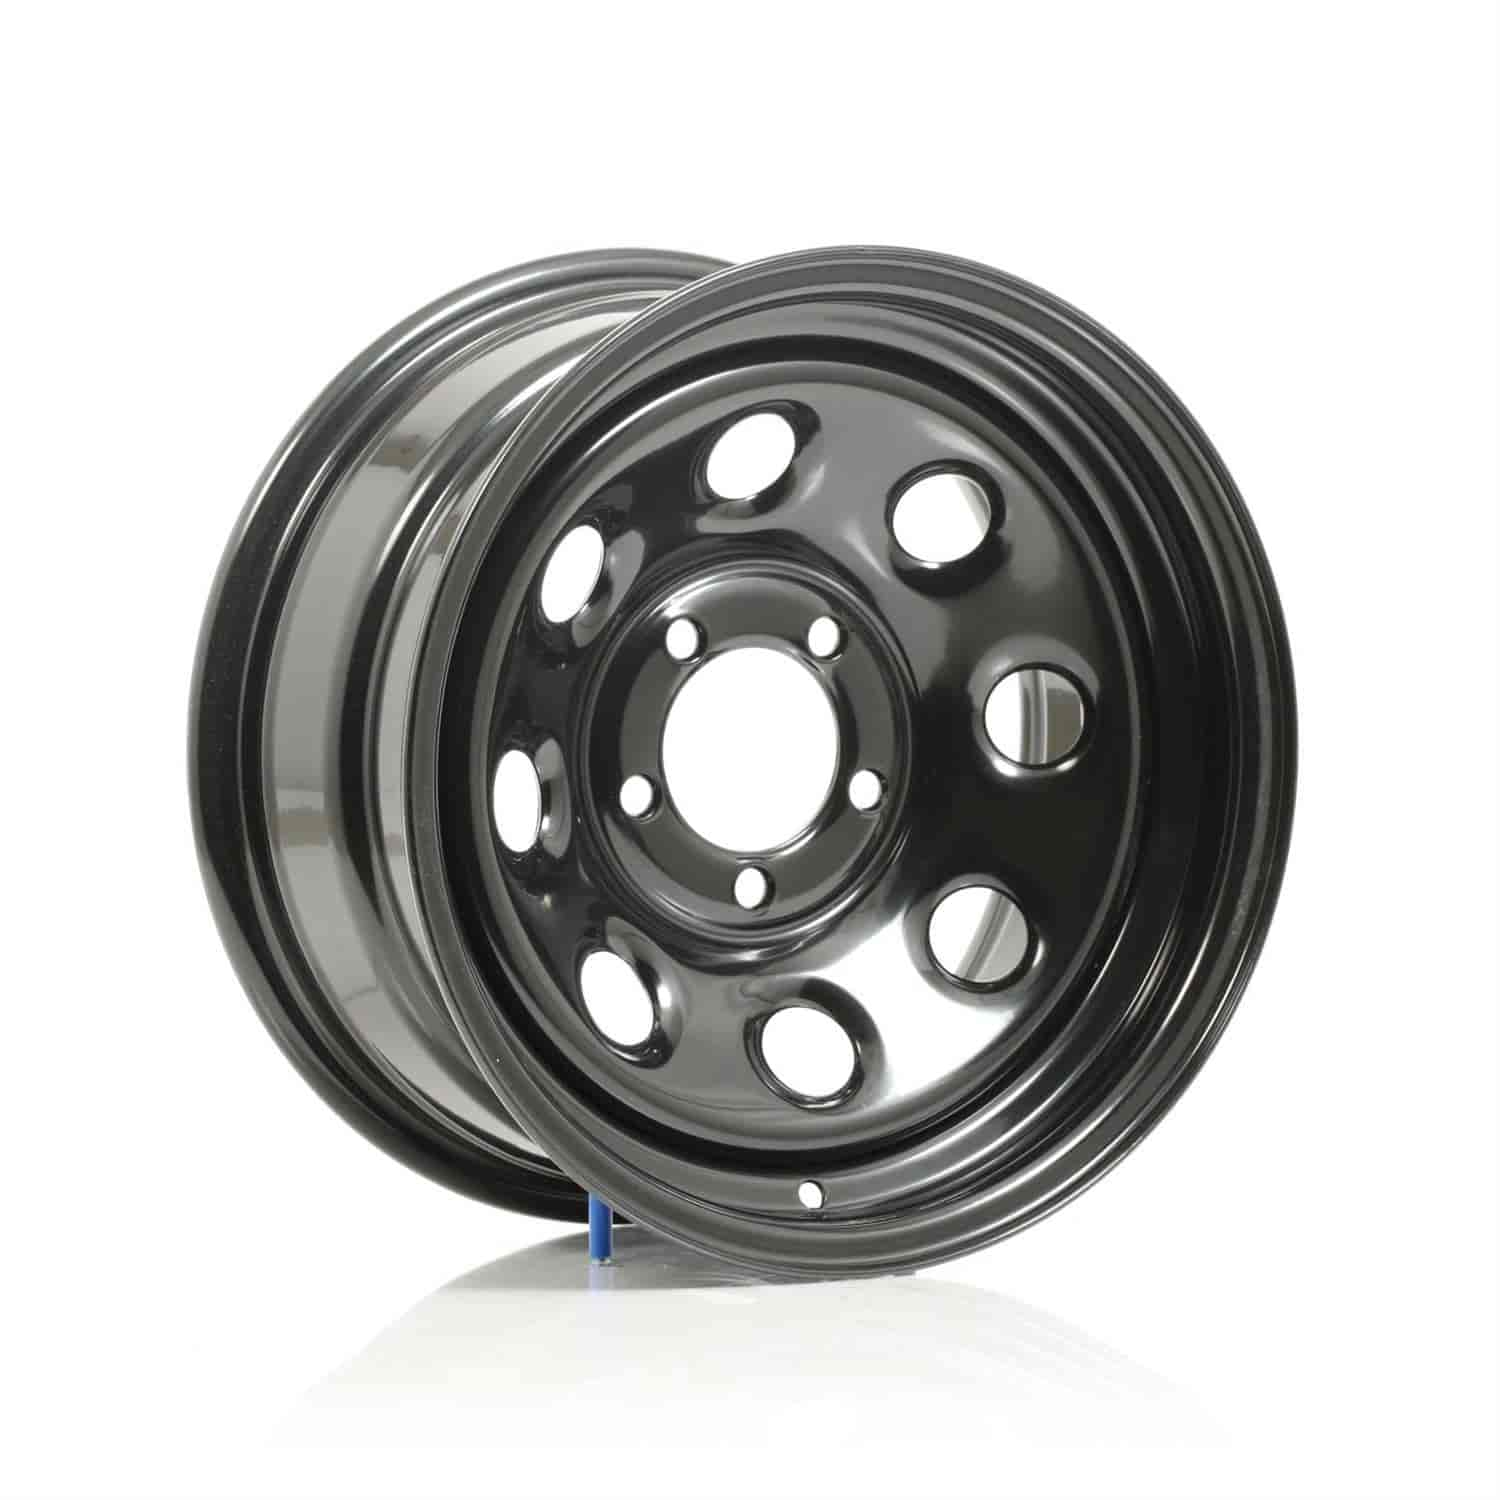 Cragar 3975812 - Cragar Black Soft 8 Wheels